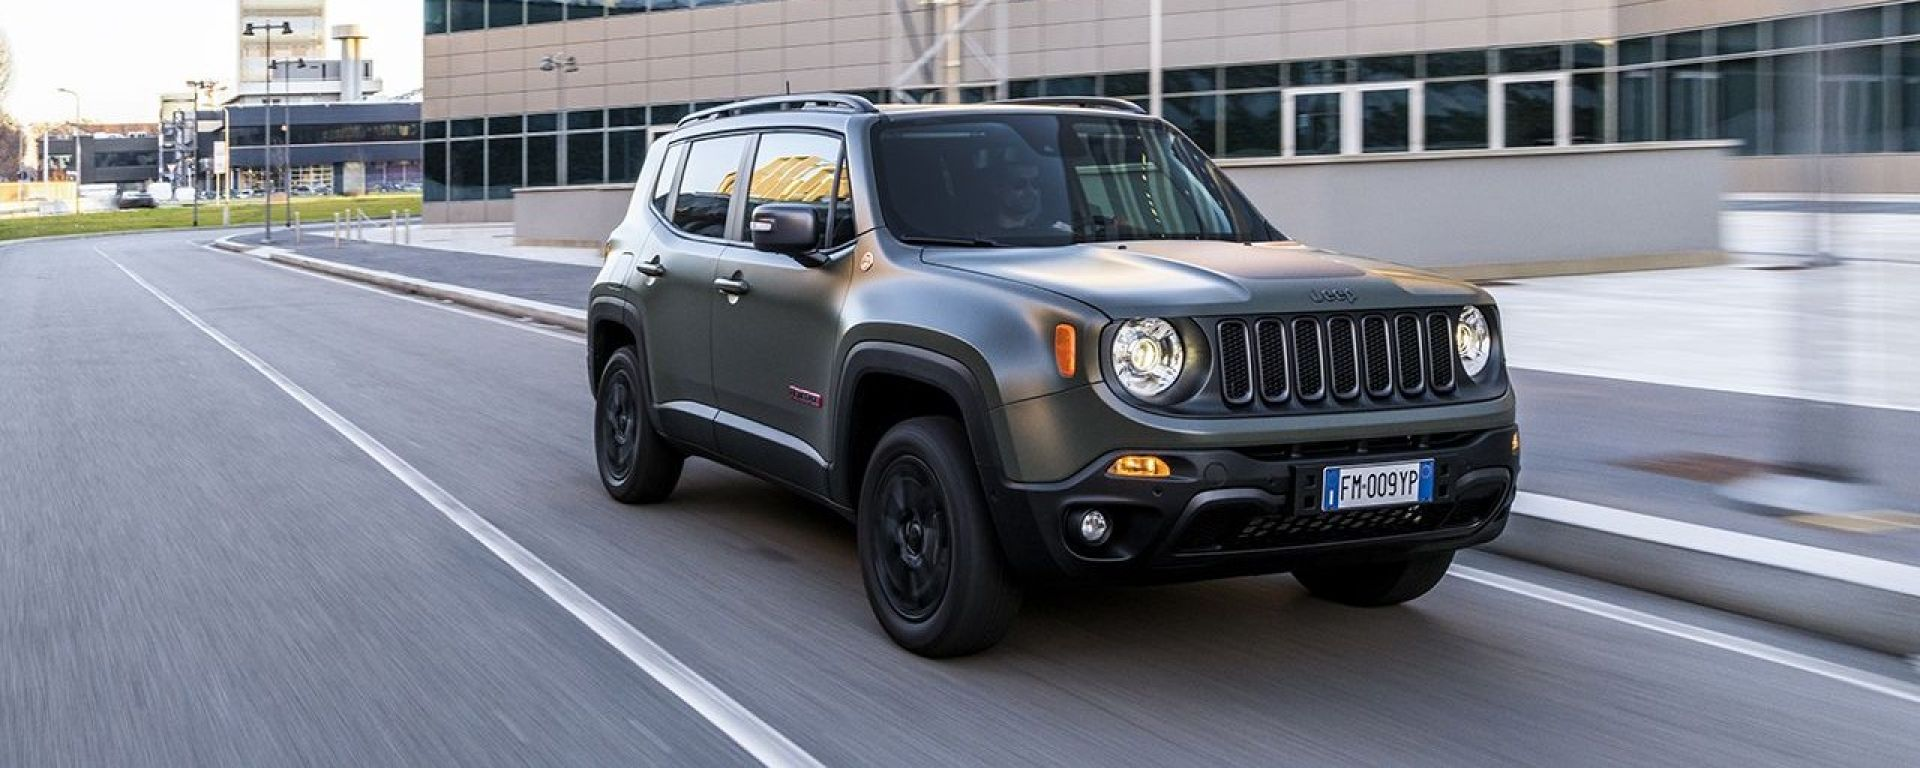 Nuova Jeep Renegade 2018: ecco come cambia [VIDEO]